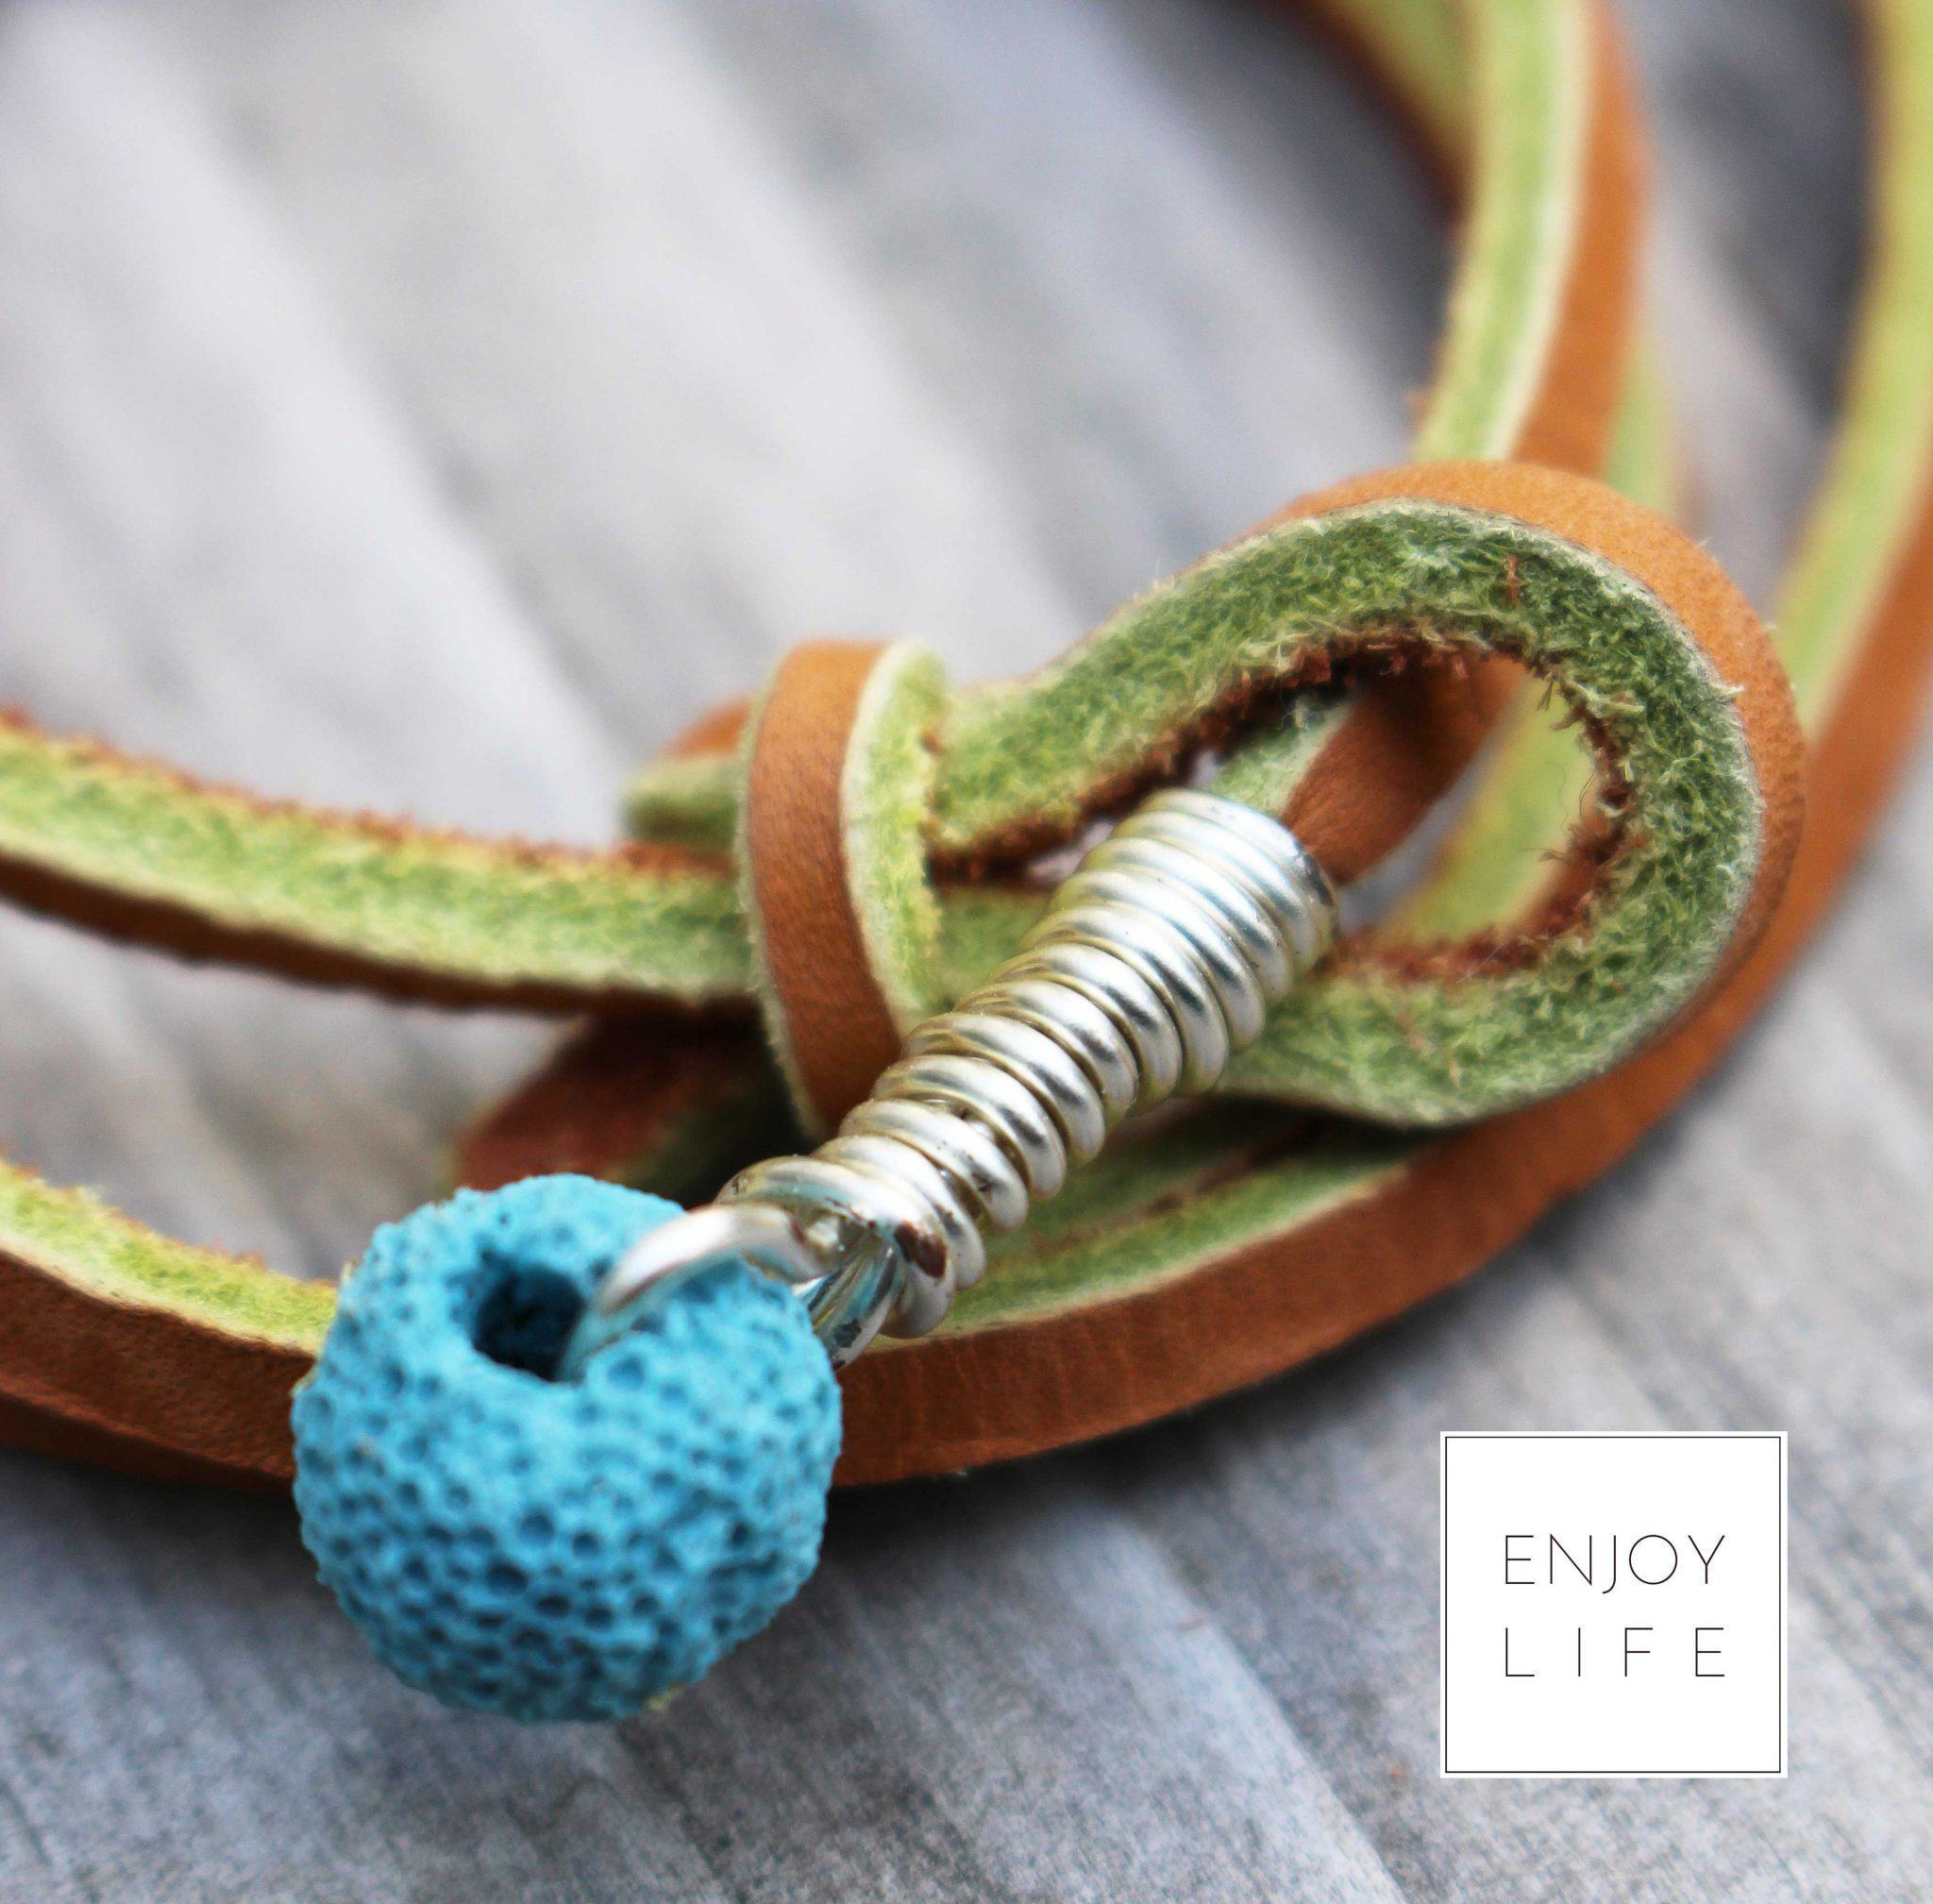 ENJOY LIFE diffuser jewelry coming soon. Get into secret group to pre-order https://www.facebook.com/groups/enjoylifeoilsshop/